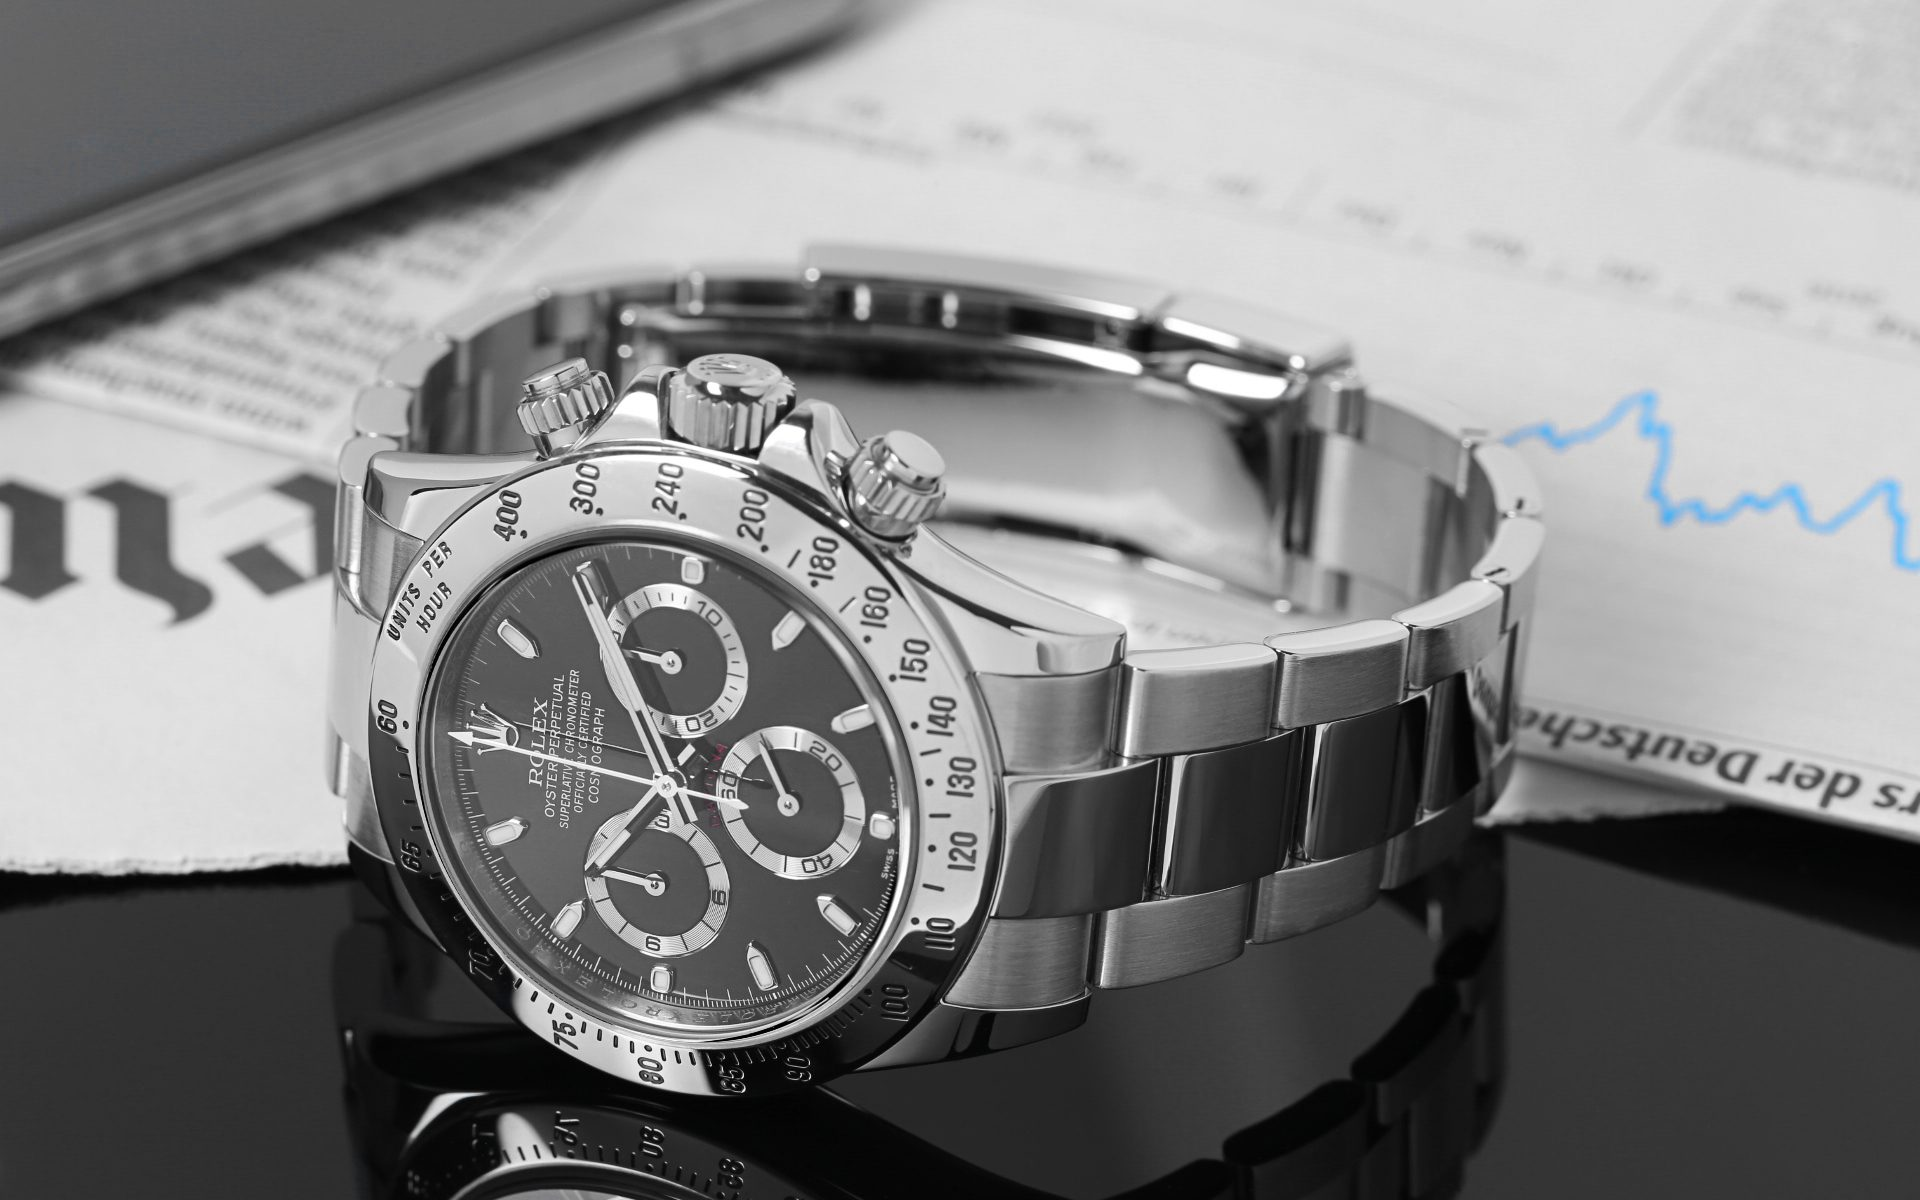 Watch Investments – How do I properly invest into a luxury watch?